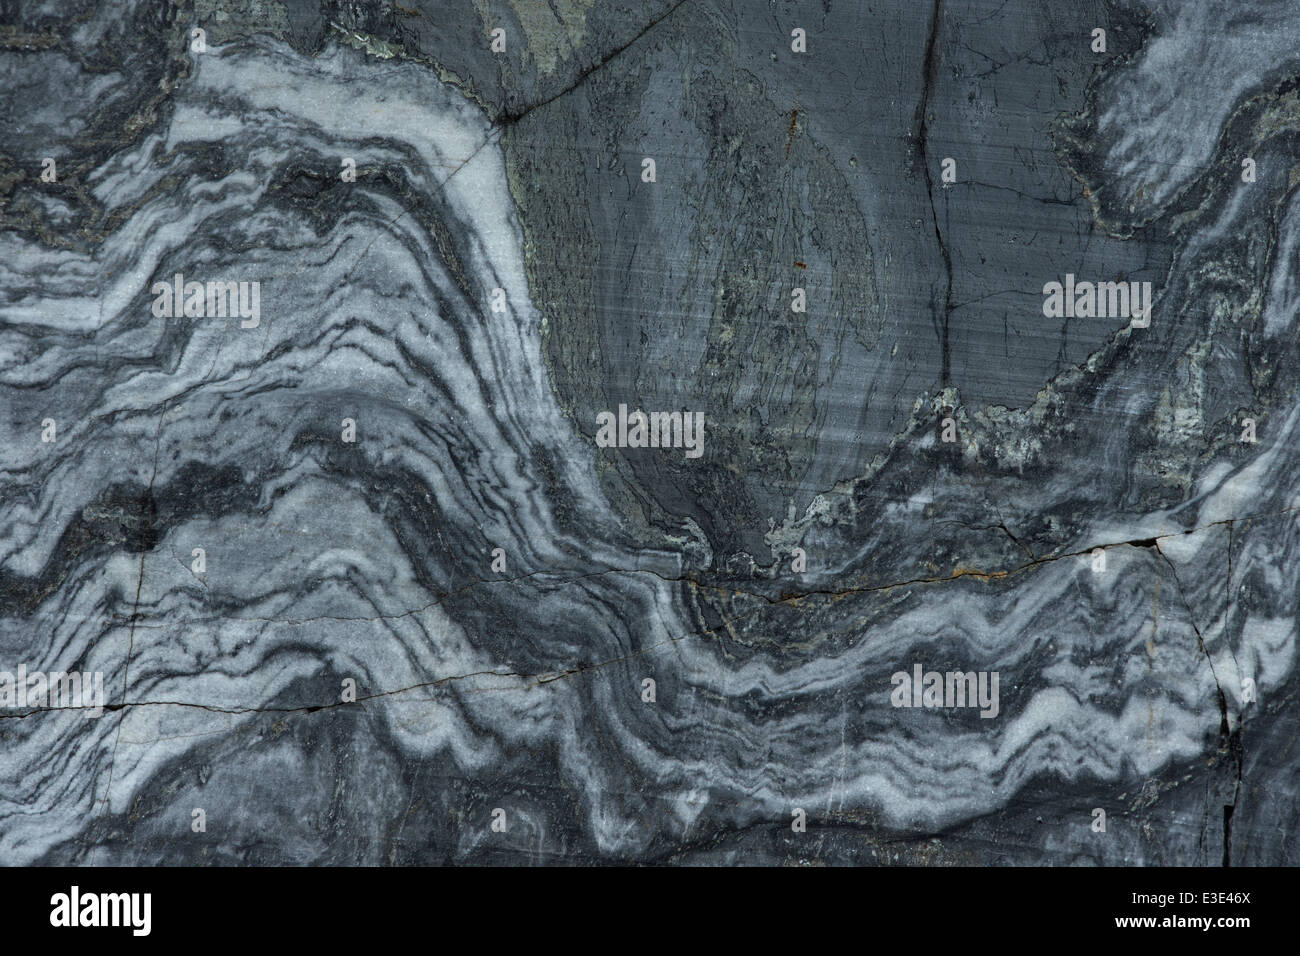 texture of marble wall in quarry as background - Stock Image